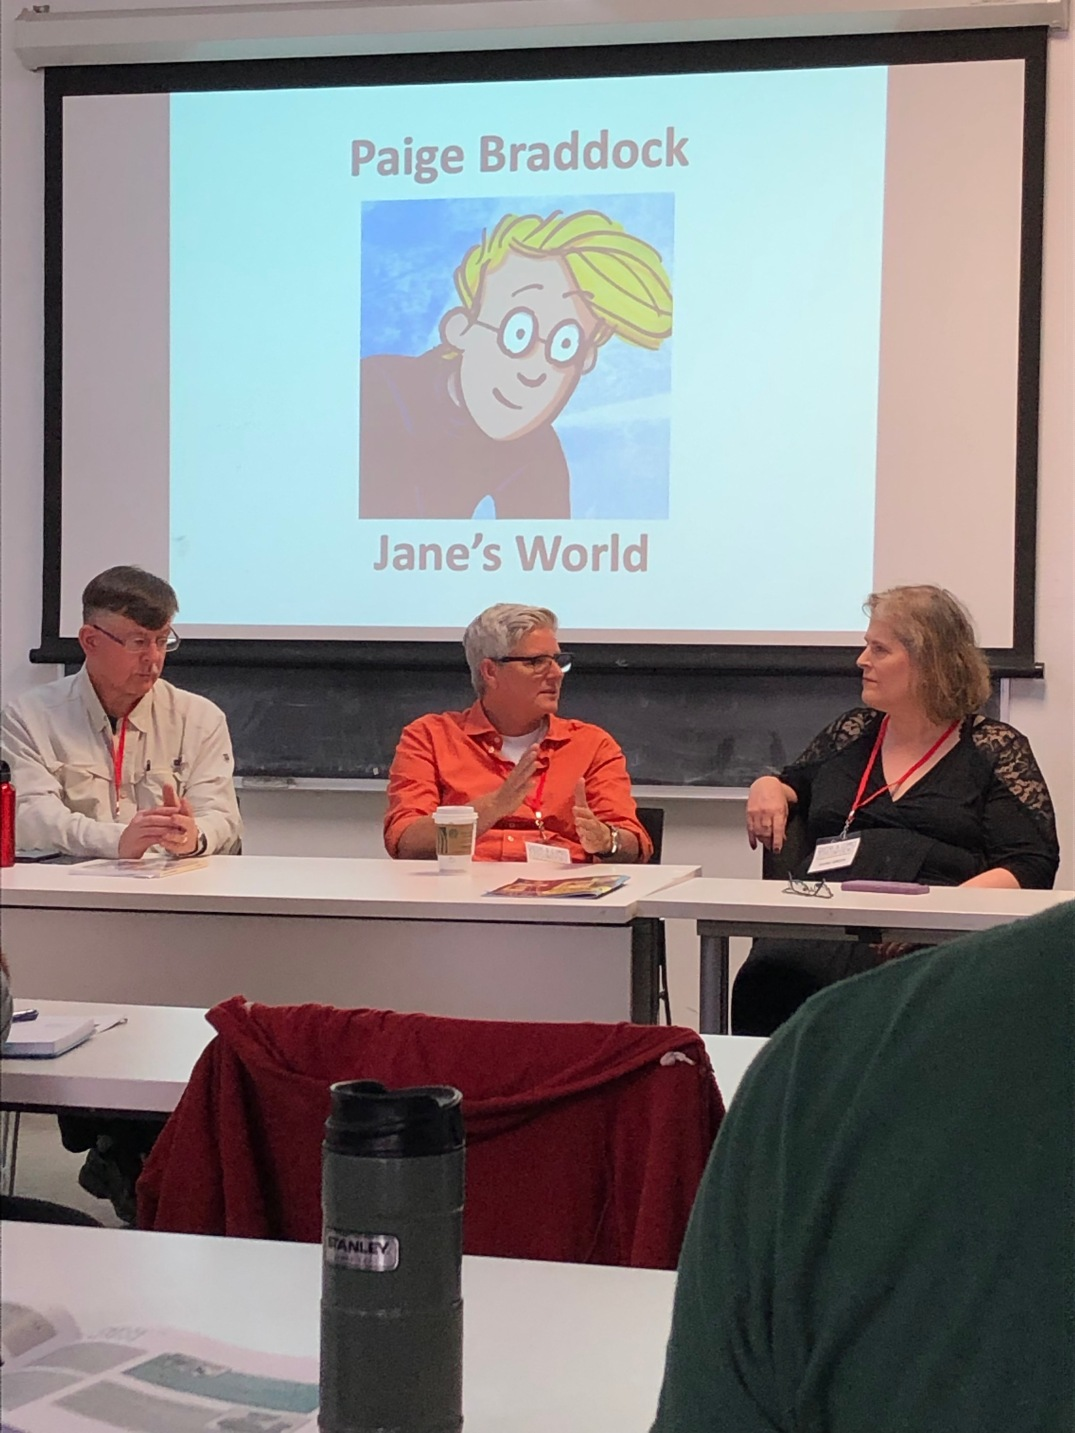 The Serialized Comics panel moderated by Jeff Krell. From left to right: Kurt Erichsen and Diana Green.